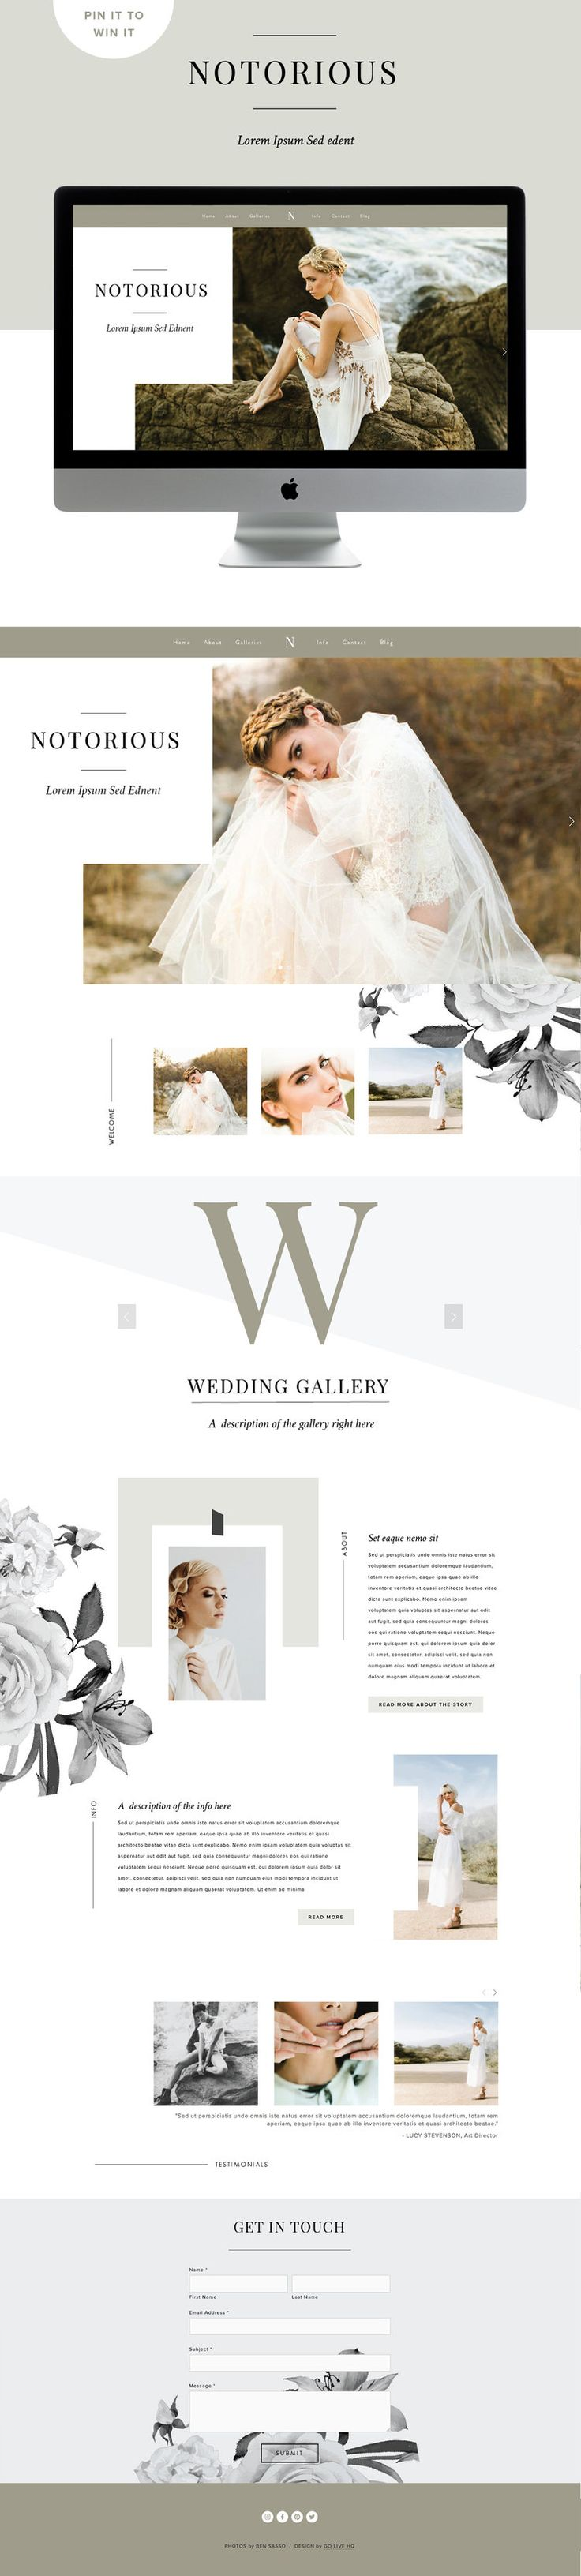 custom squarespace template inspiration - this is soooo gorgeous and I need this in my life!